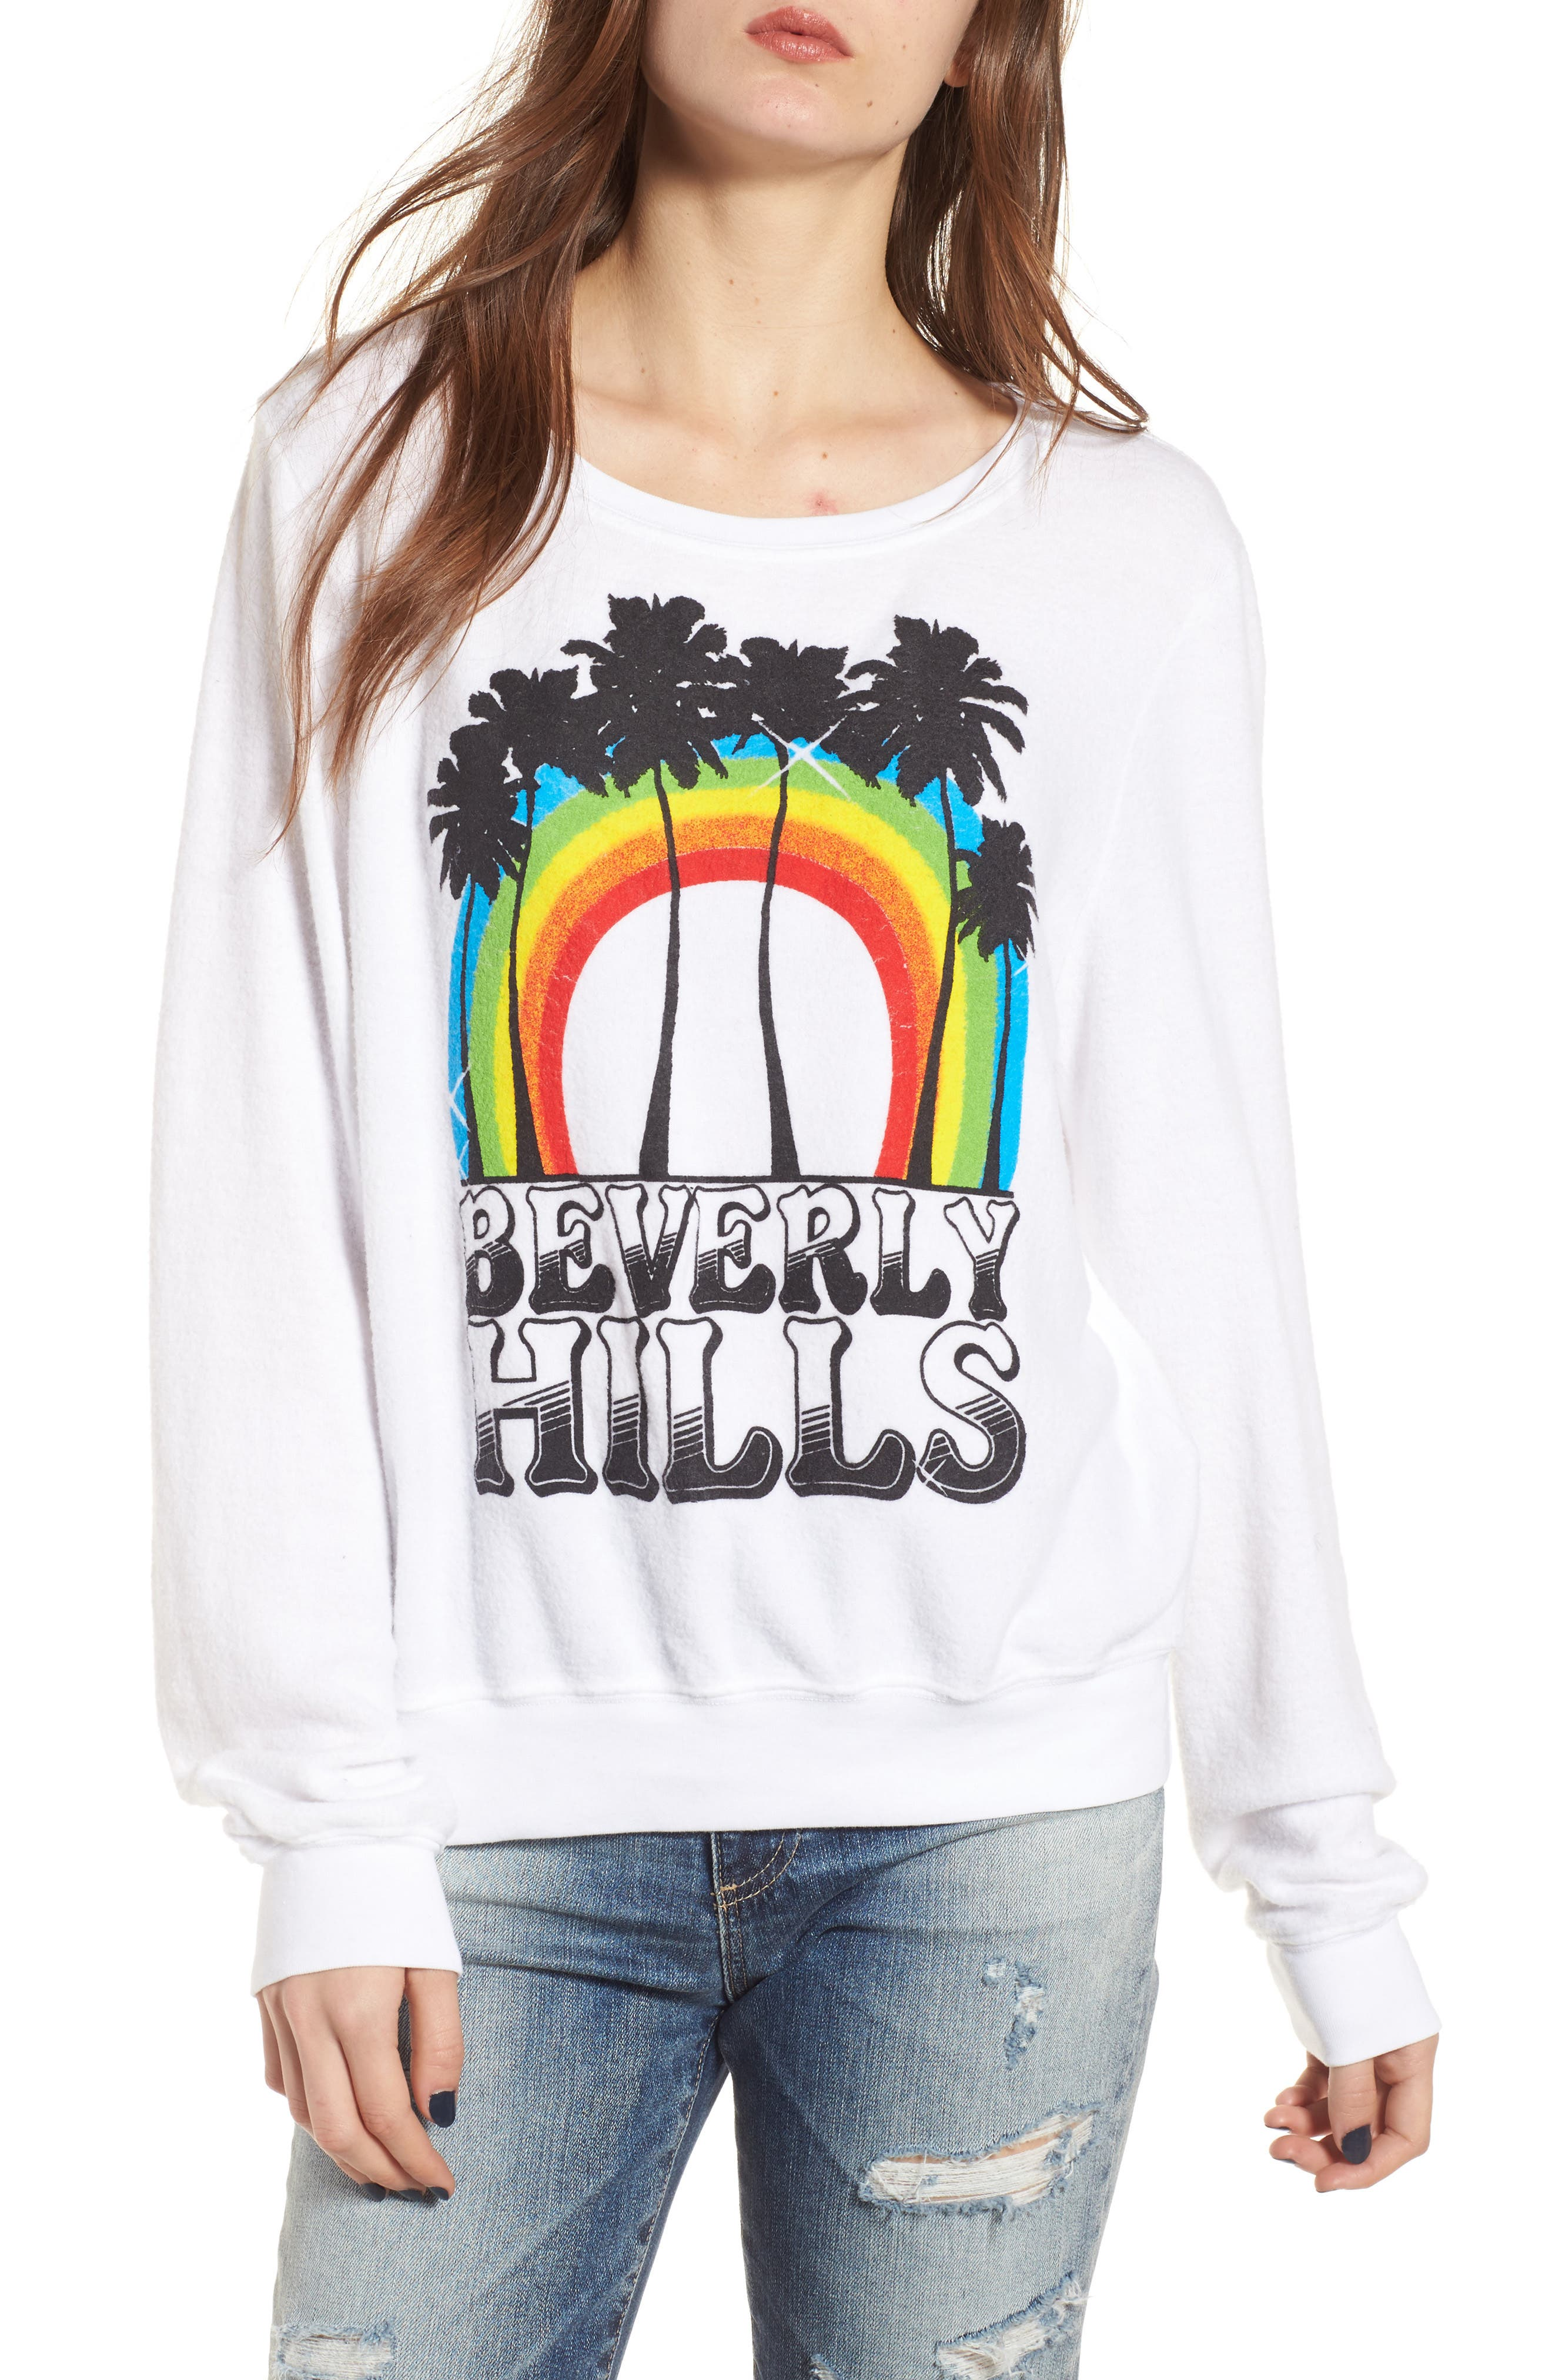 Beverly Hills Sweatshirt,                             Main thumbnail 1, color,                             Clean White